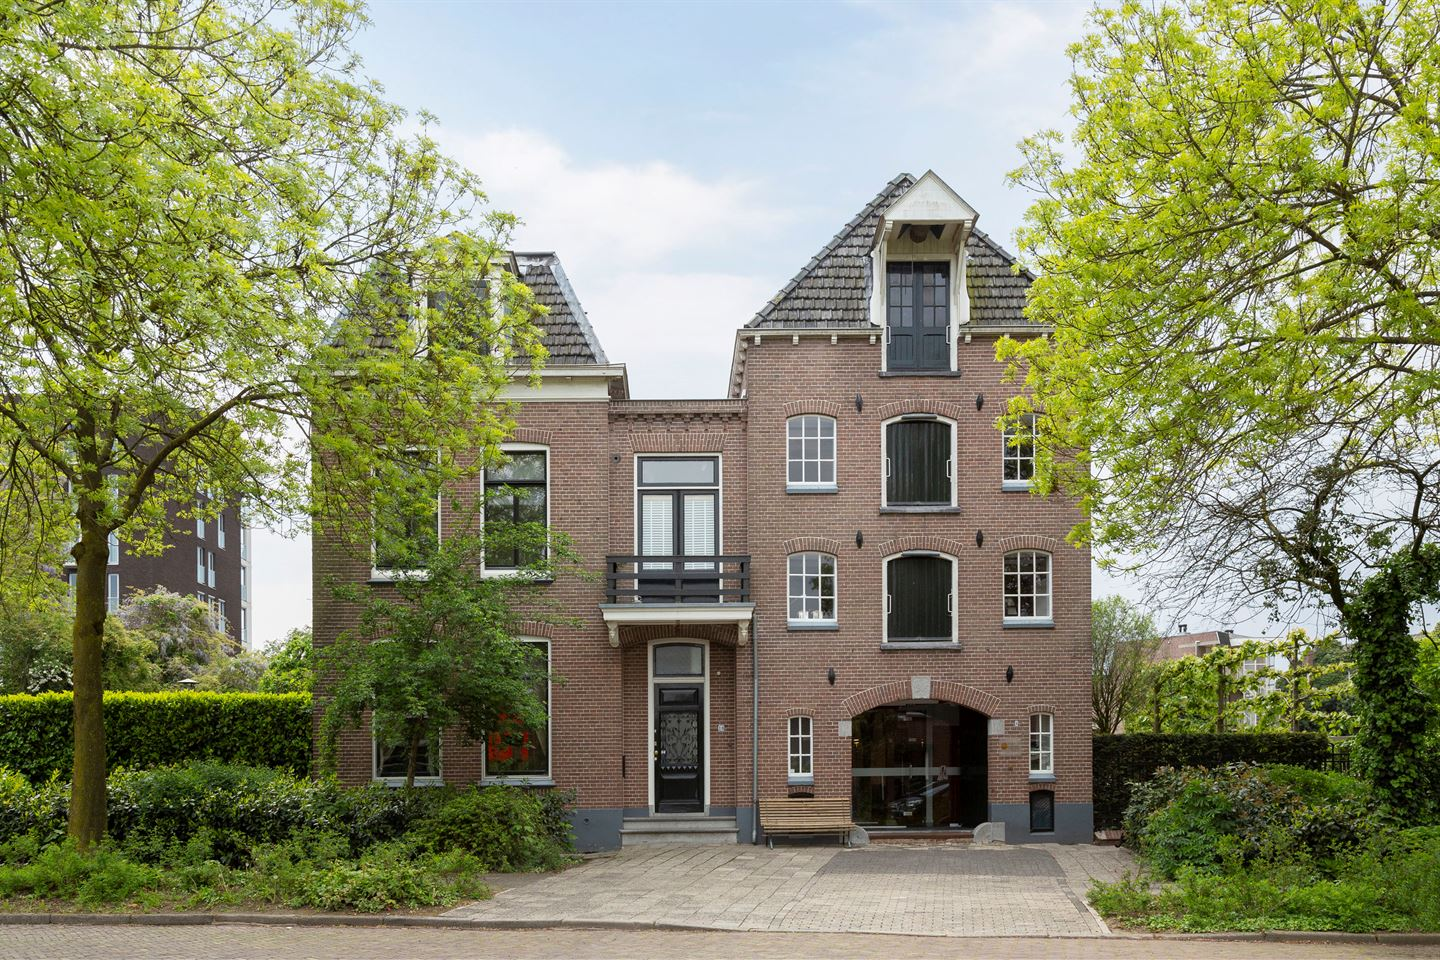 View photo 1 of Sluisstraat 8 -10